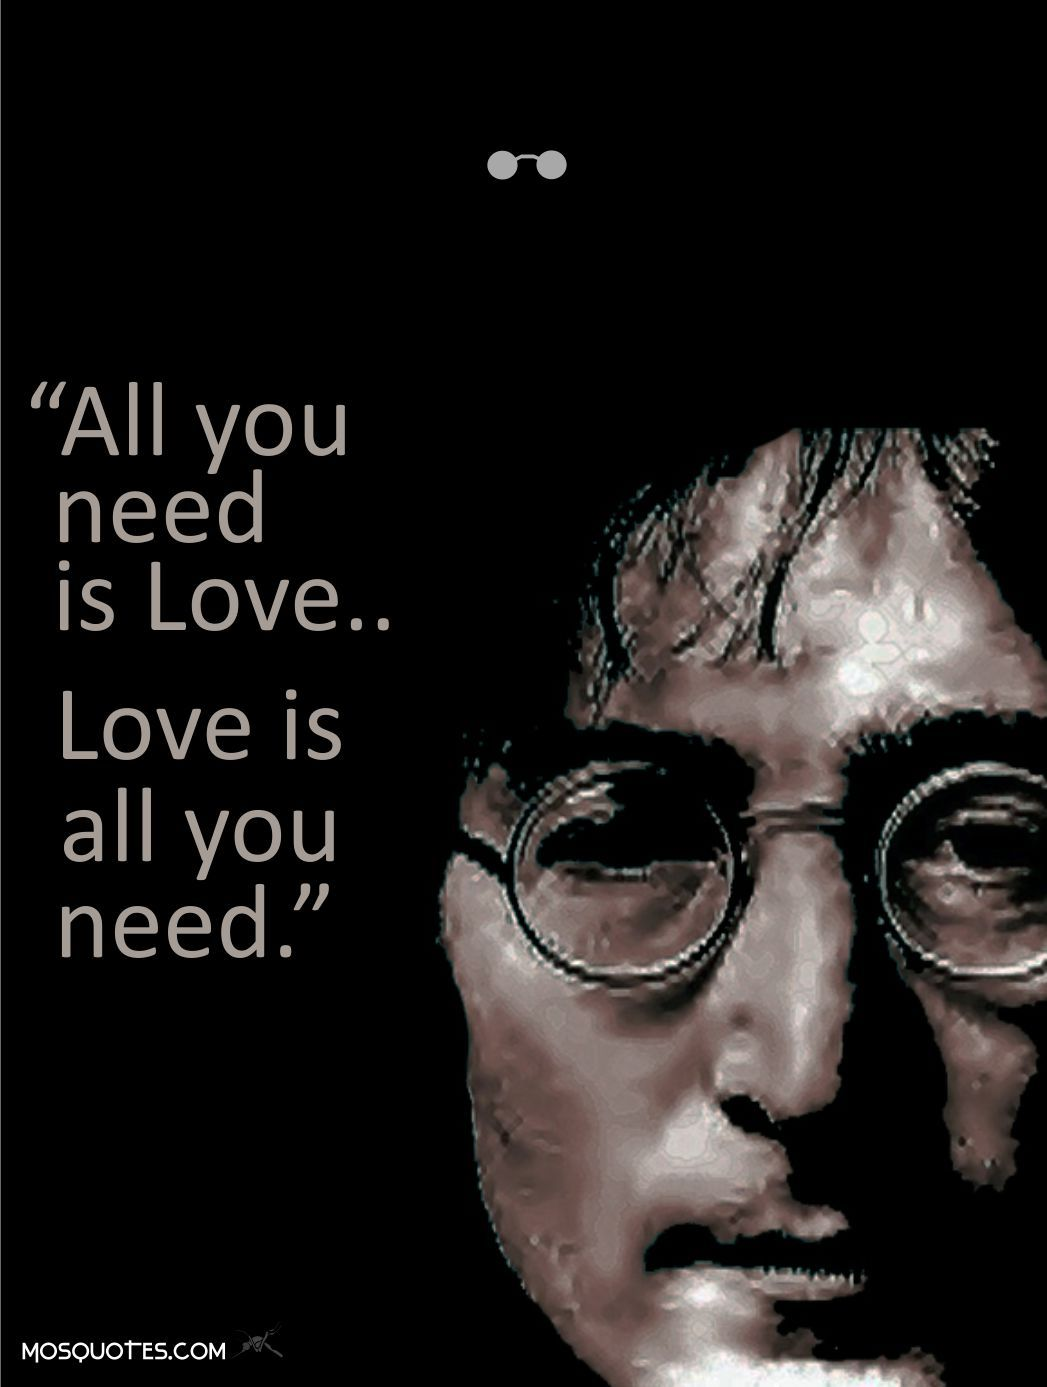 John Lennon Quotes About Love All You Need Is Love Love Is All You Need Mosquotes John Lennon Quotes Love Quotes All You Need Is Love